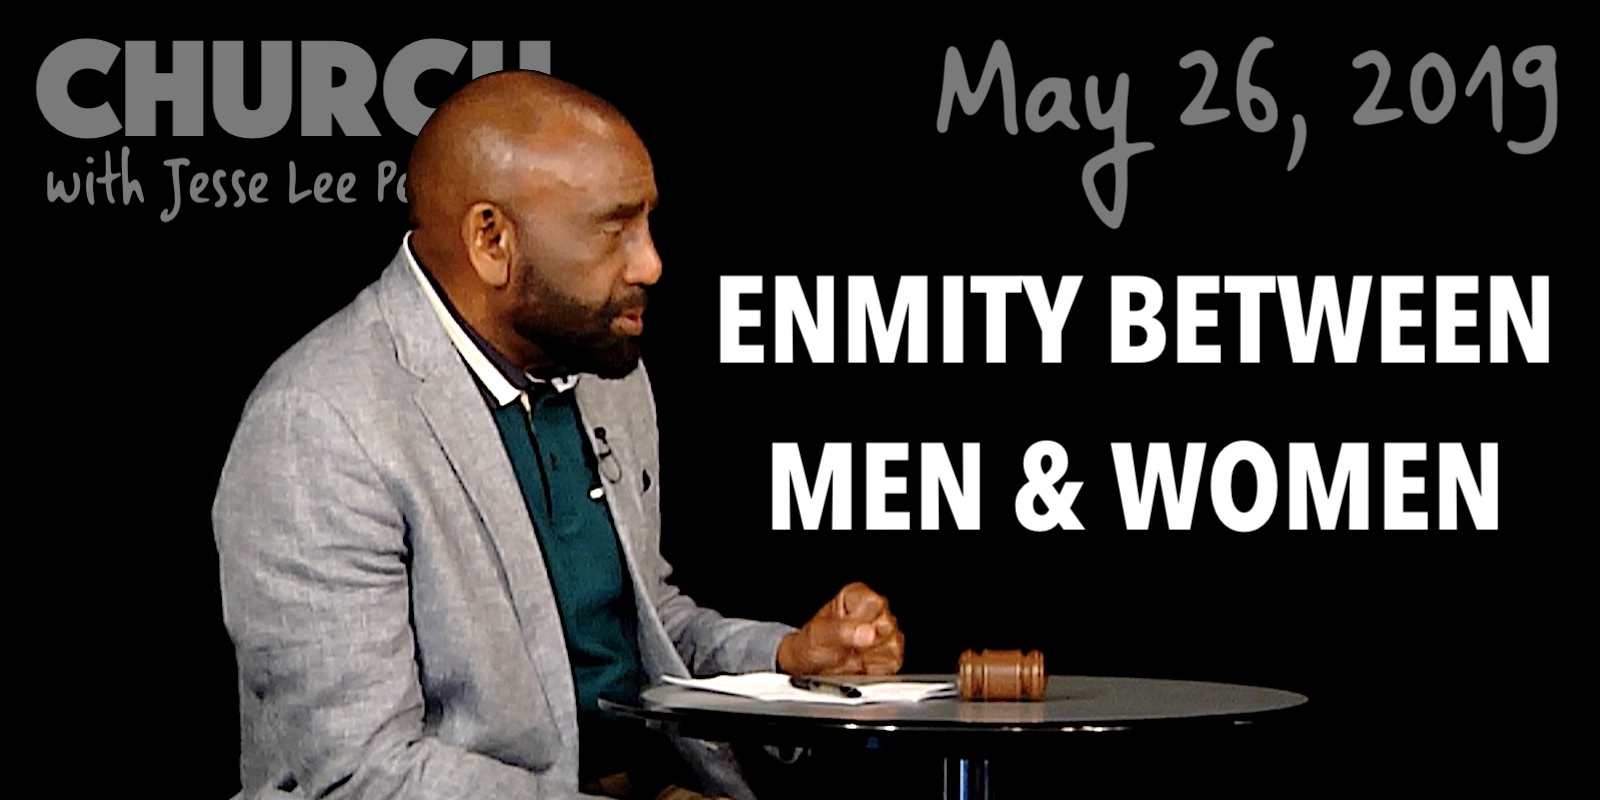 Enmity Between Men and Women (Church, May 26, 2019)